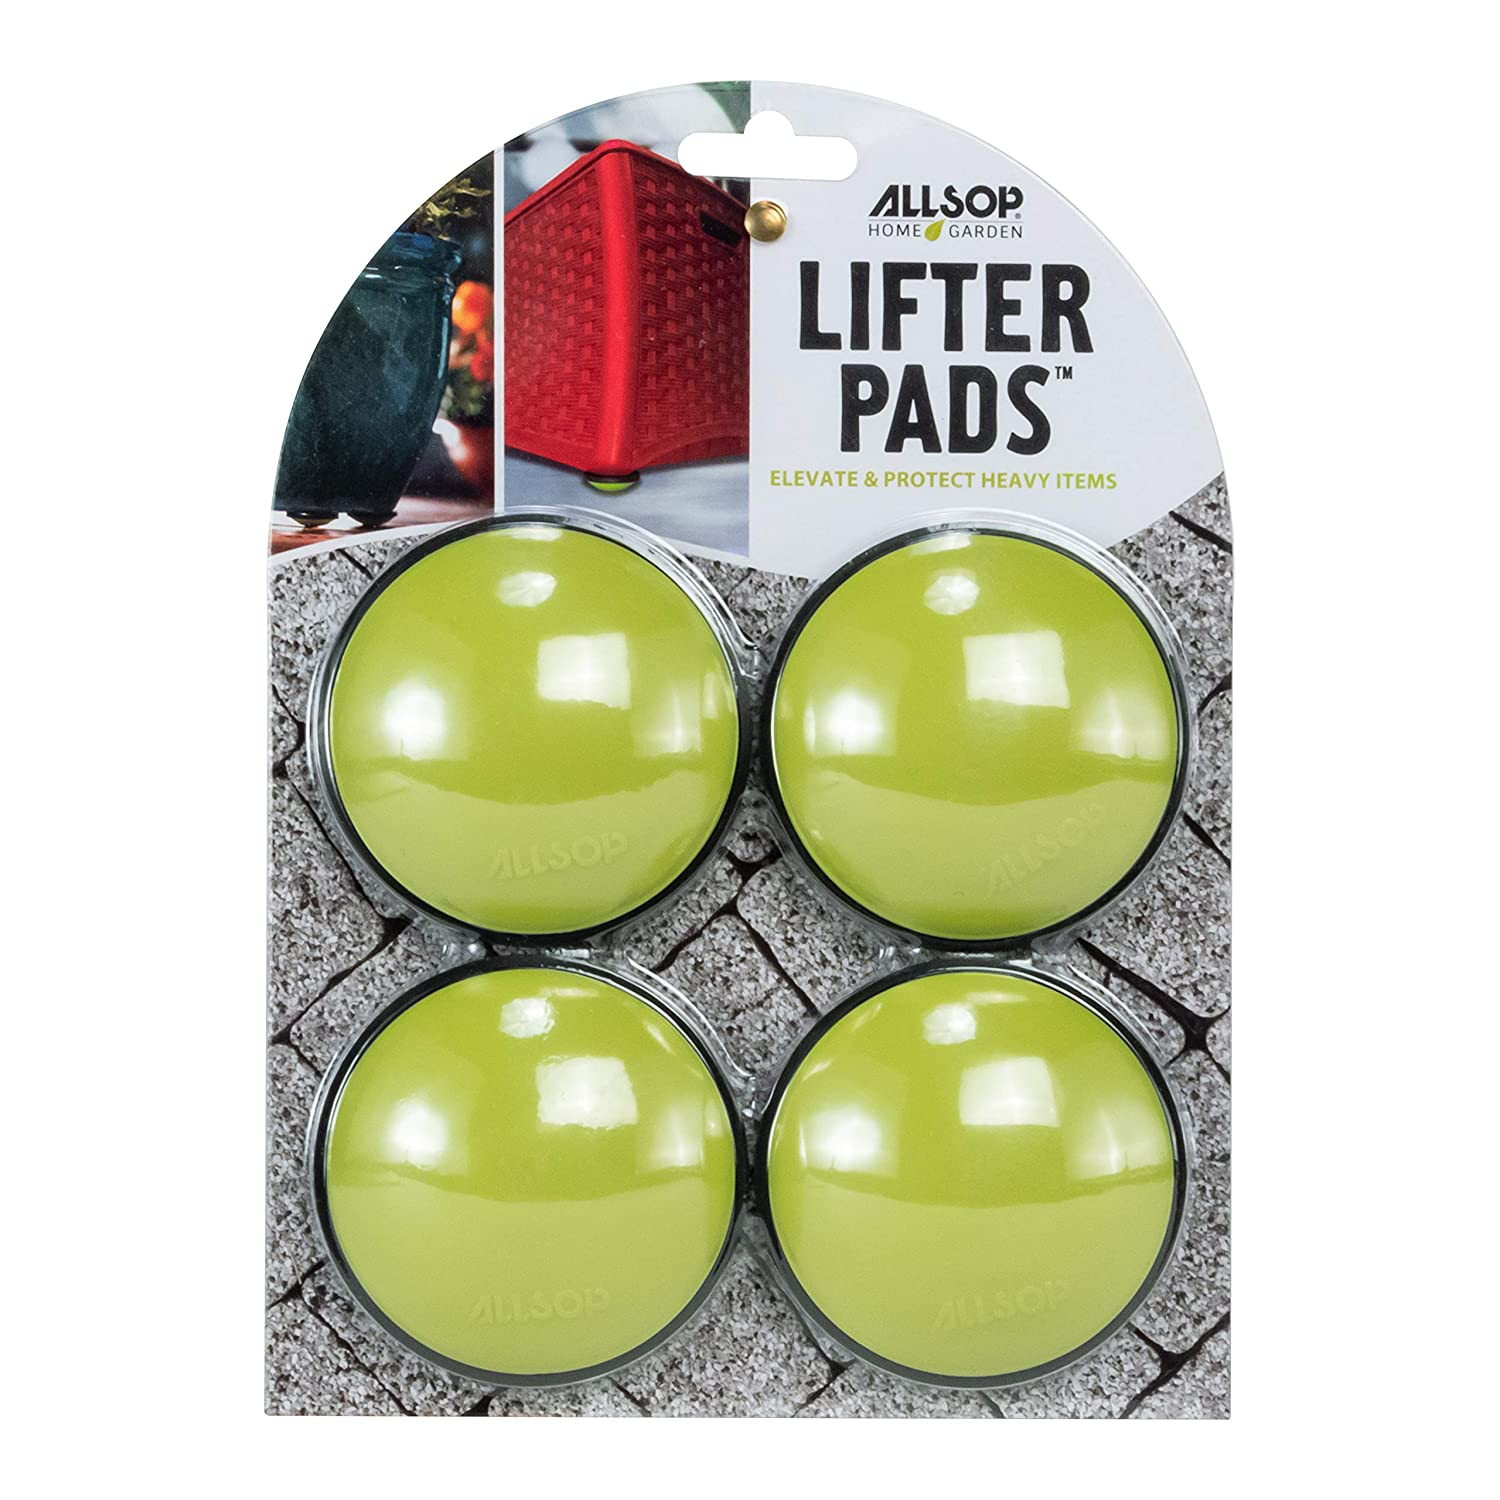 Allsop Home and Garden Lifter Pads, Protect Floors, Decks and Patios with 3,000 lbs rating, discreet non-skidpad lifters / risers / feet / toes, (Lime, Set of four, 1-Count)